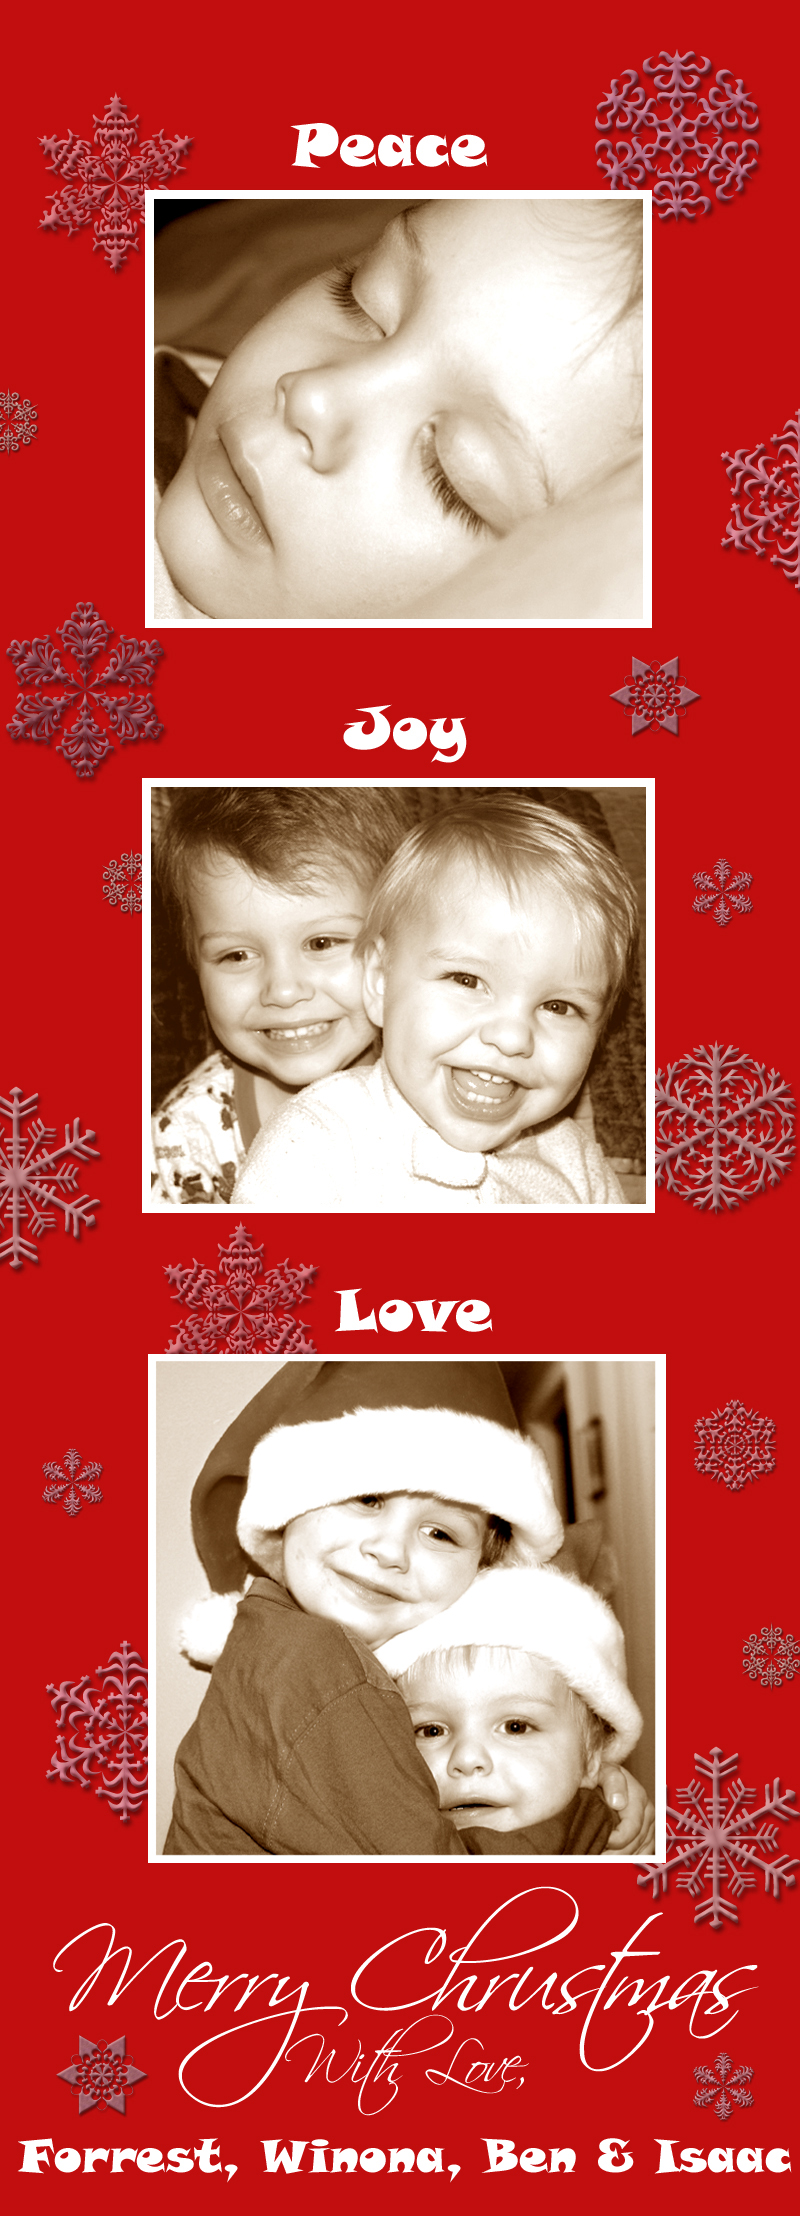 Christmas Card '06 by Bens-Momma